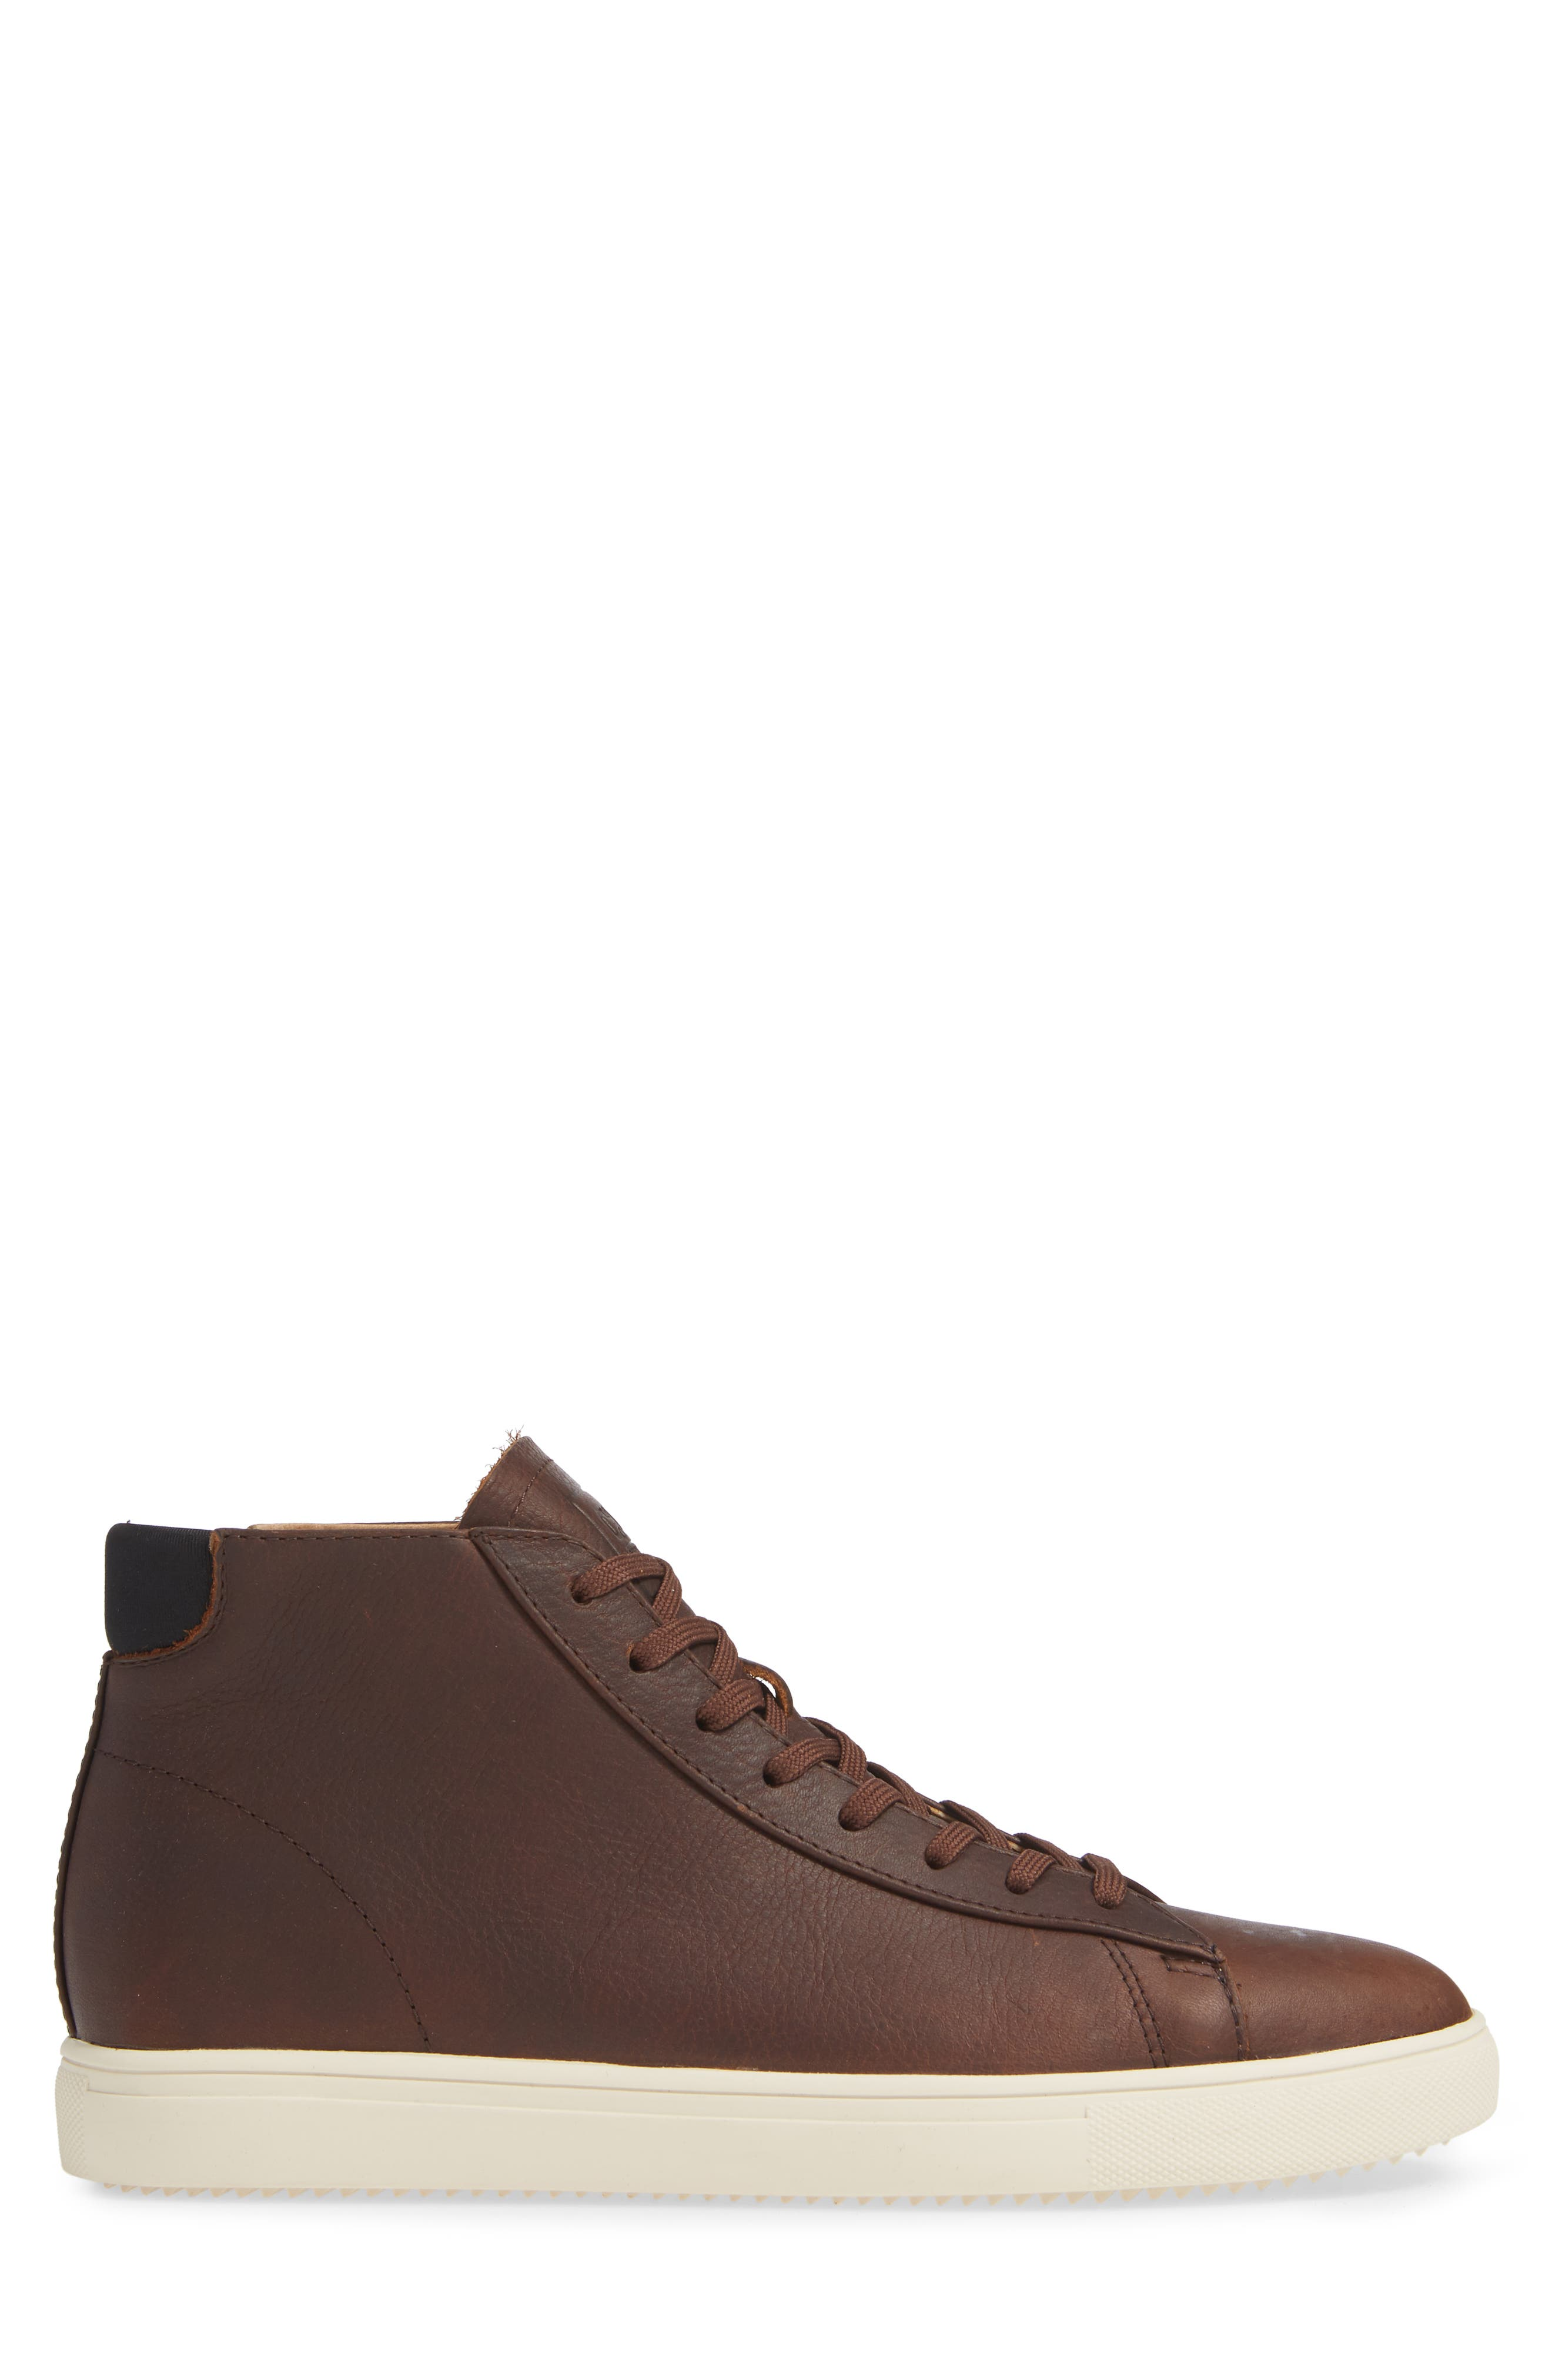 'Bradley Mid' Sneaker,                             Alternate thumbnail 3, color,                             COCOA LEATHER